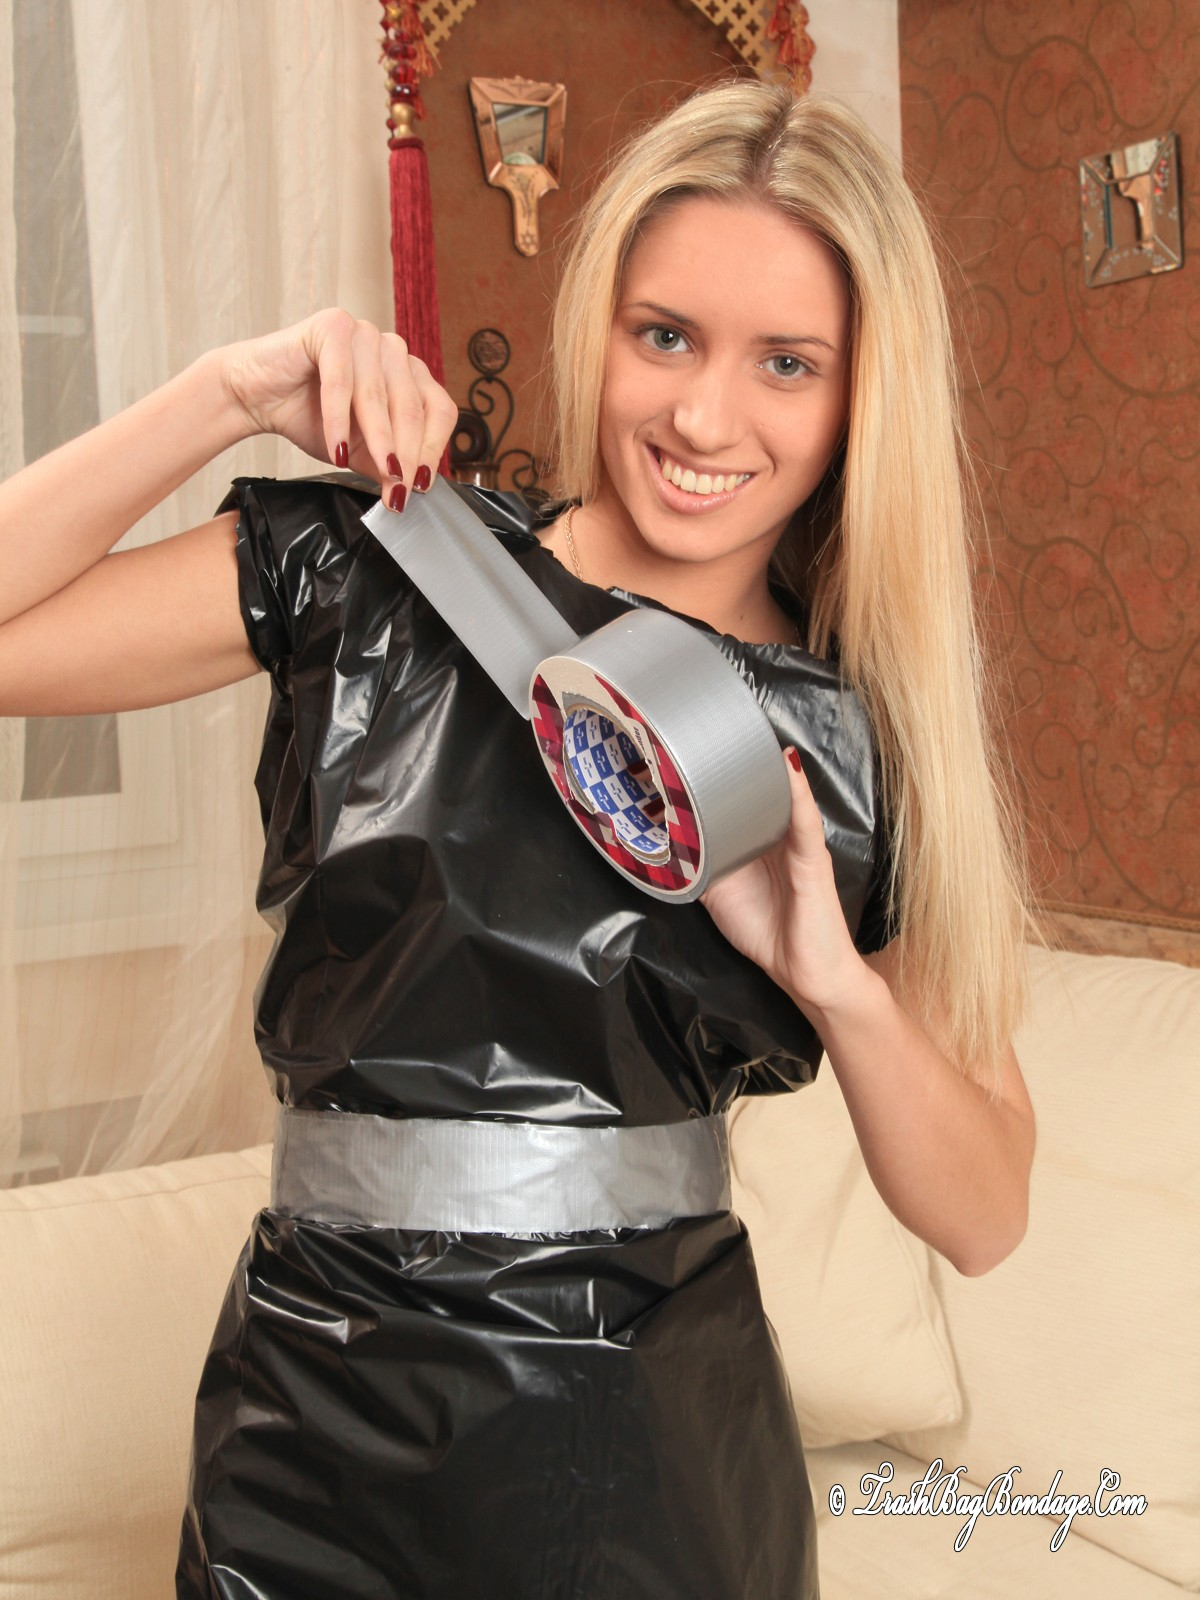 Garbage bag bondage